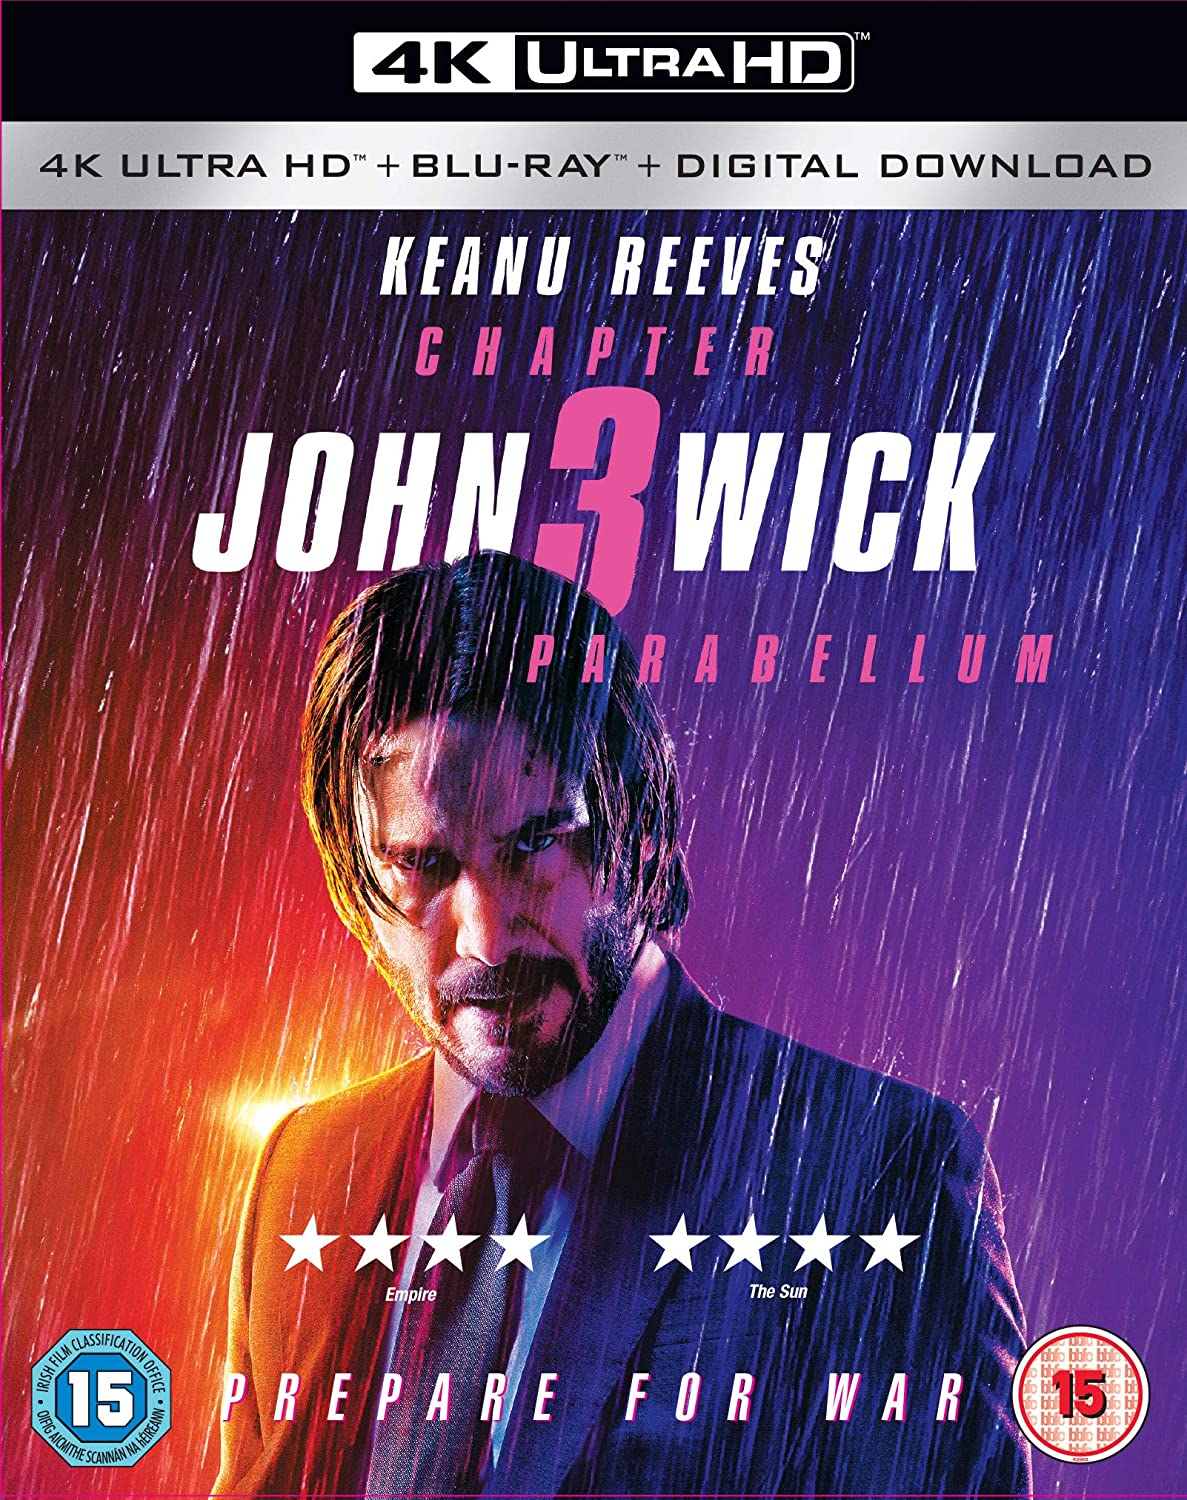 John Wick: Chapter 3 (2019) Hindi Dubbed 720p BluRay 1GB